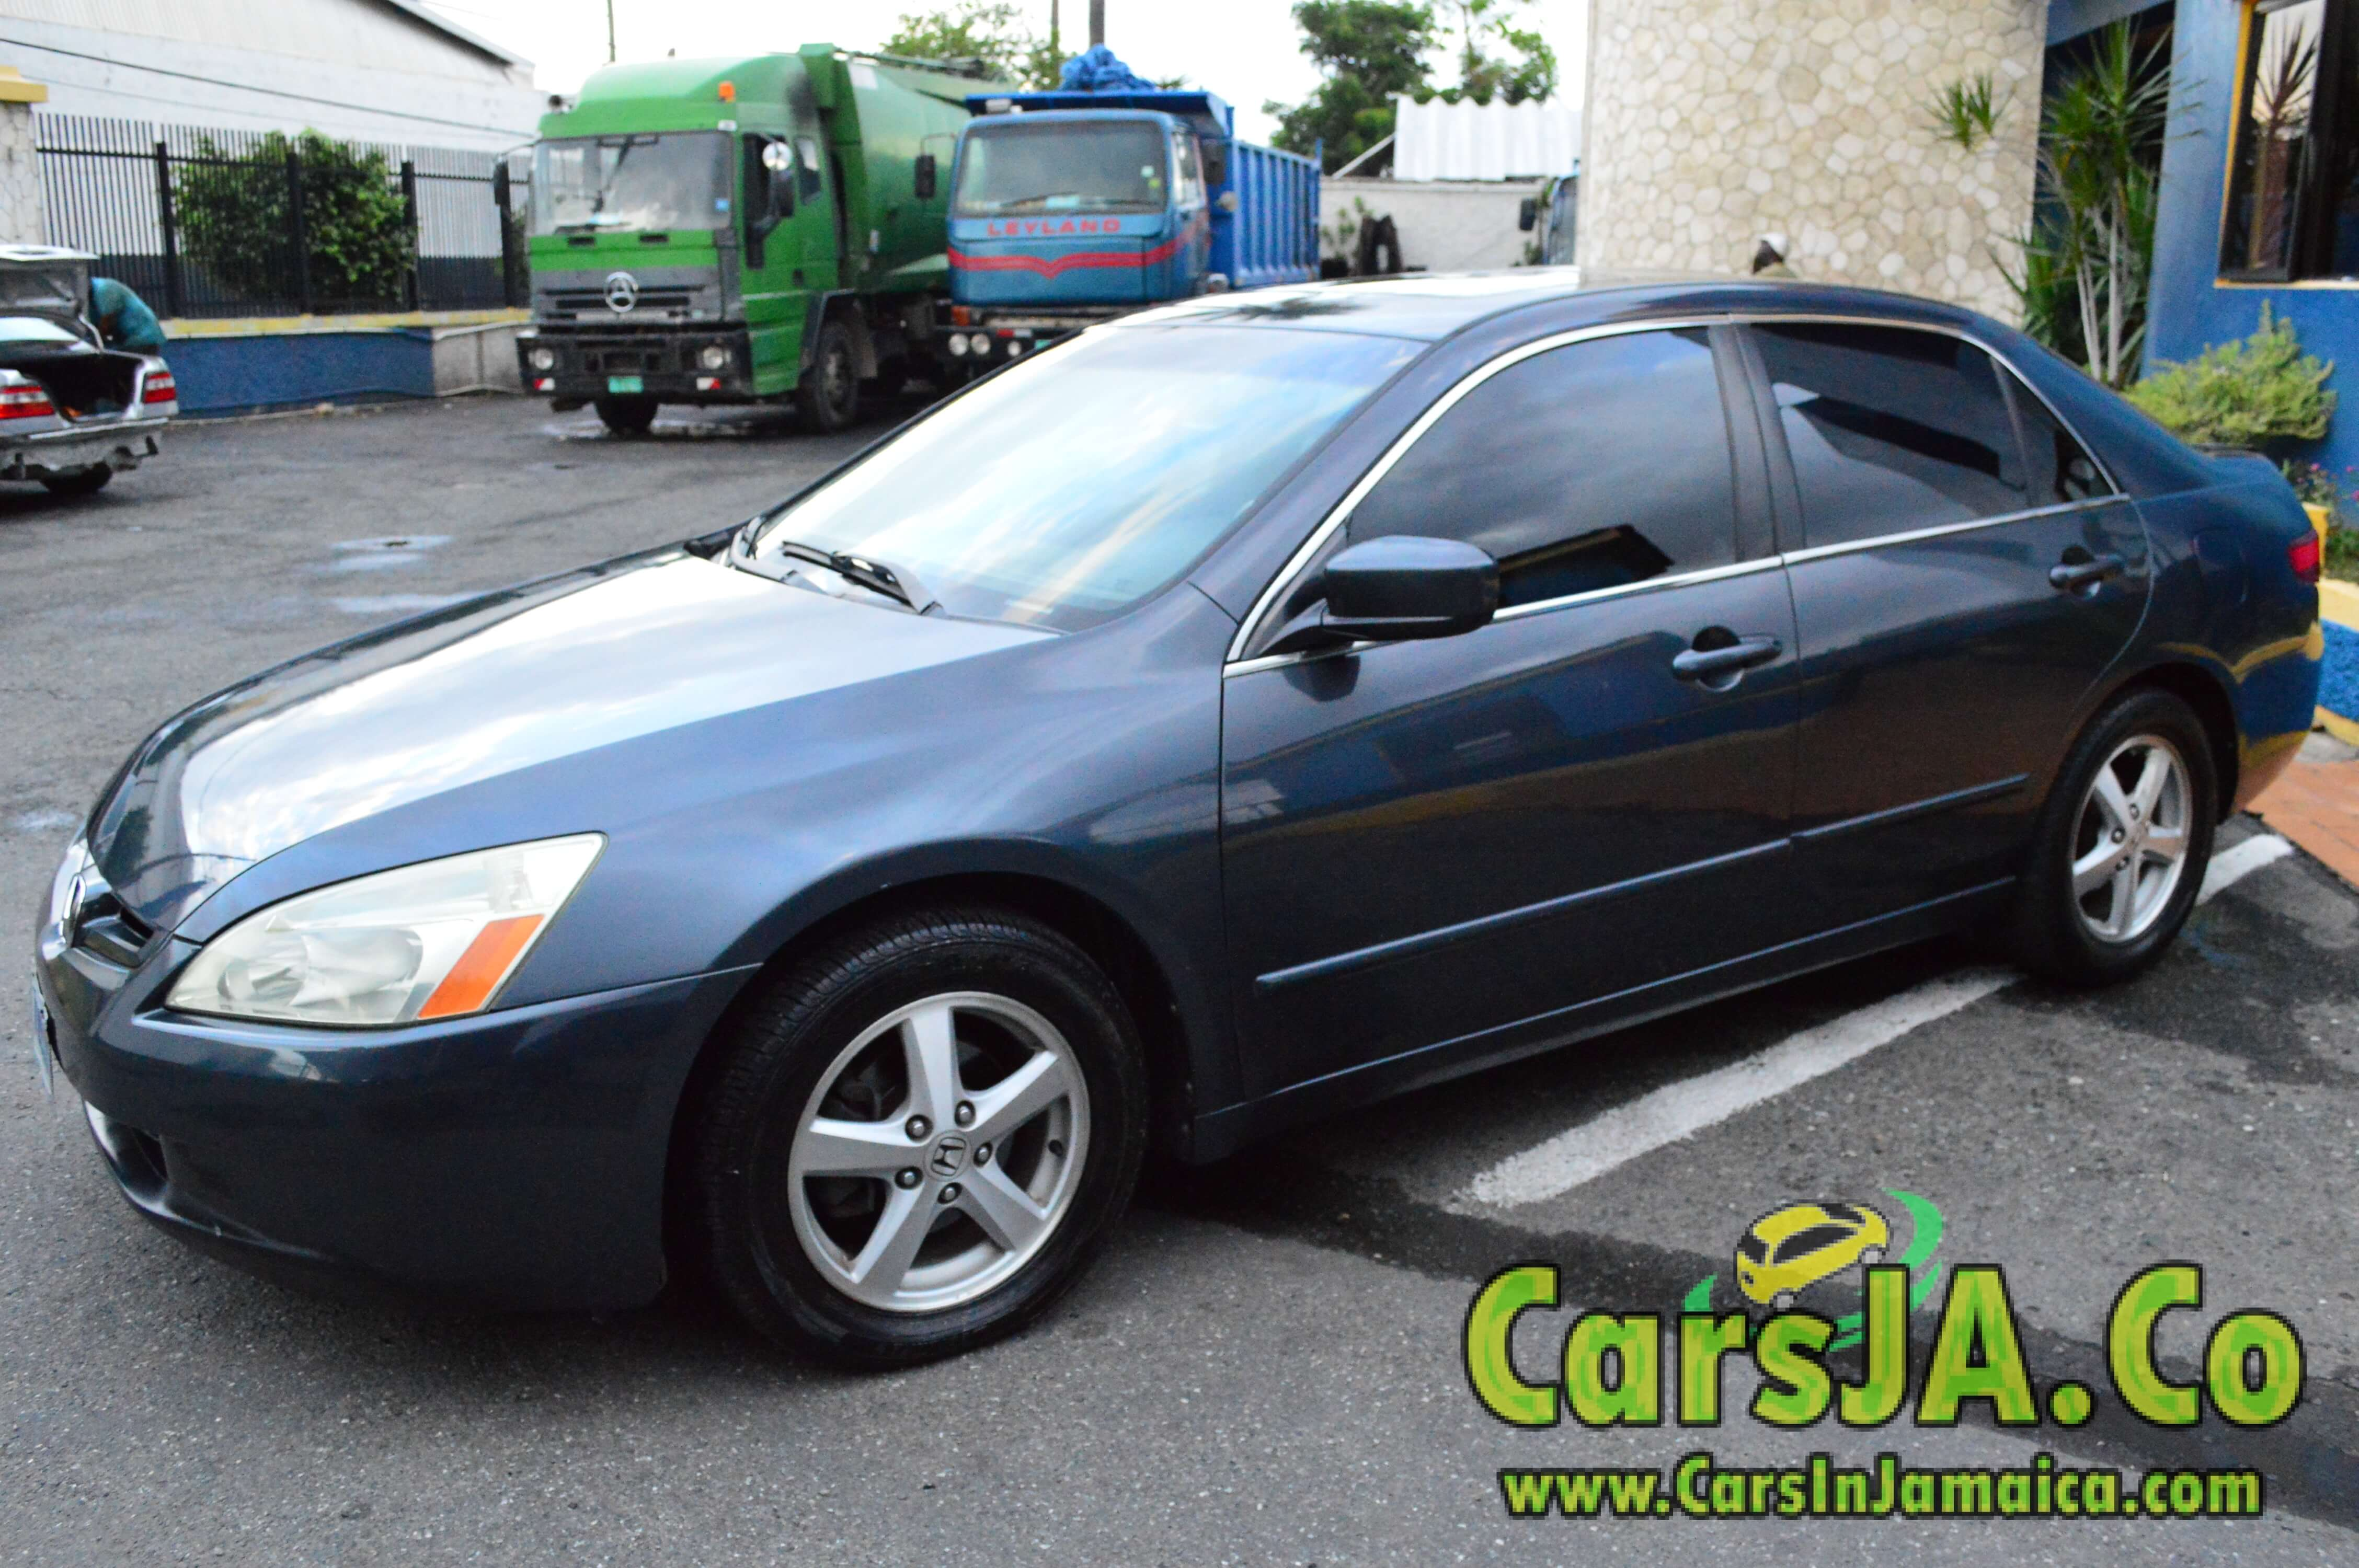 Cars For Sale I Jamaica: HONDA ACCORD EX For Sale In Jamaica